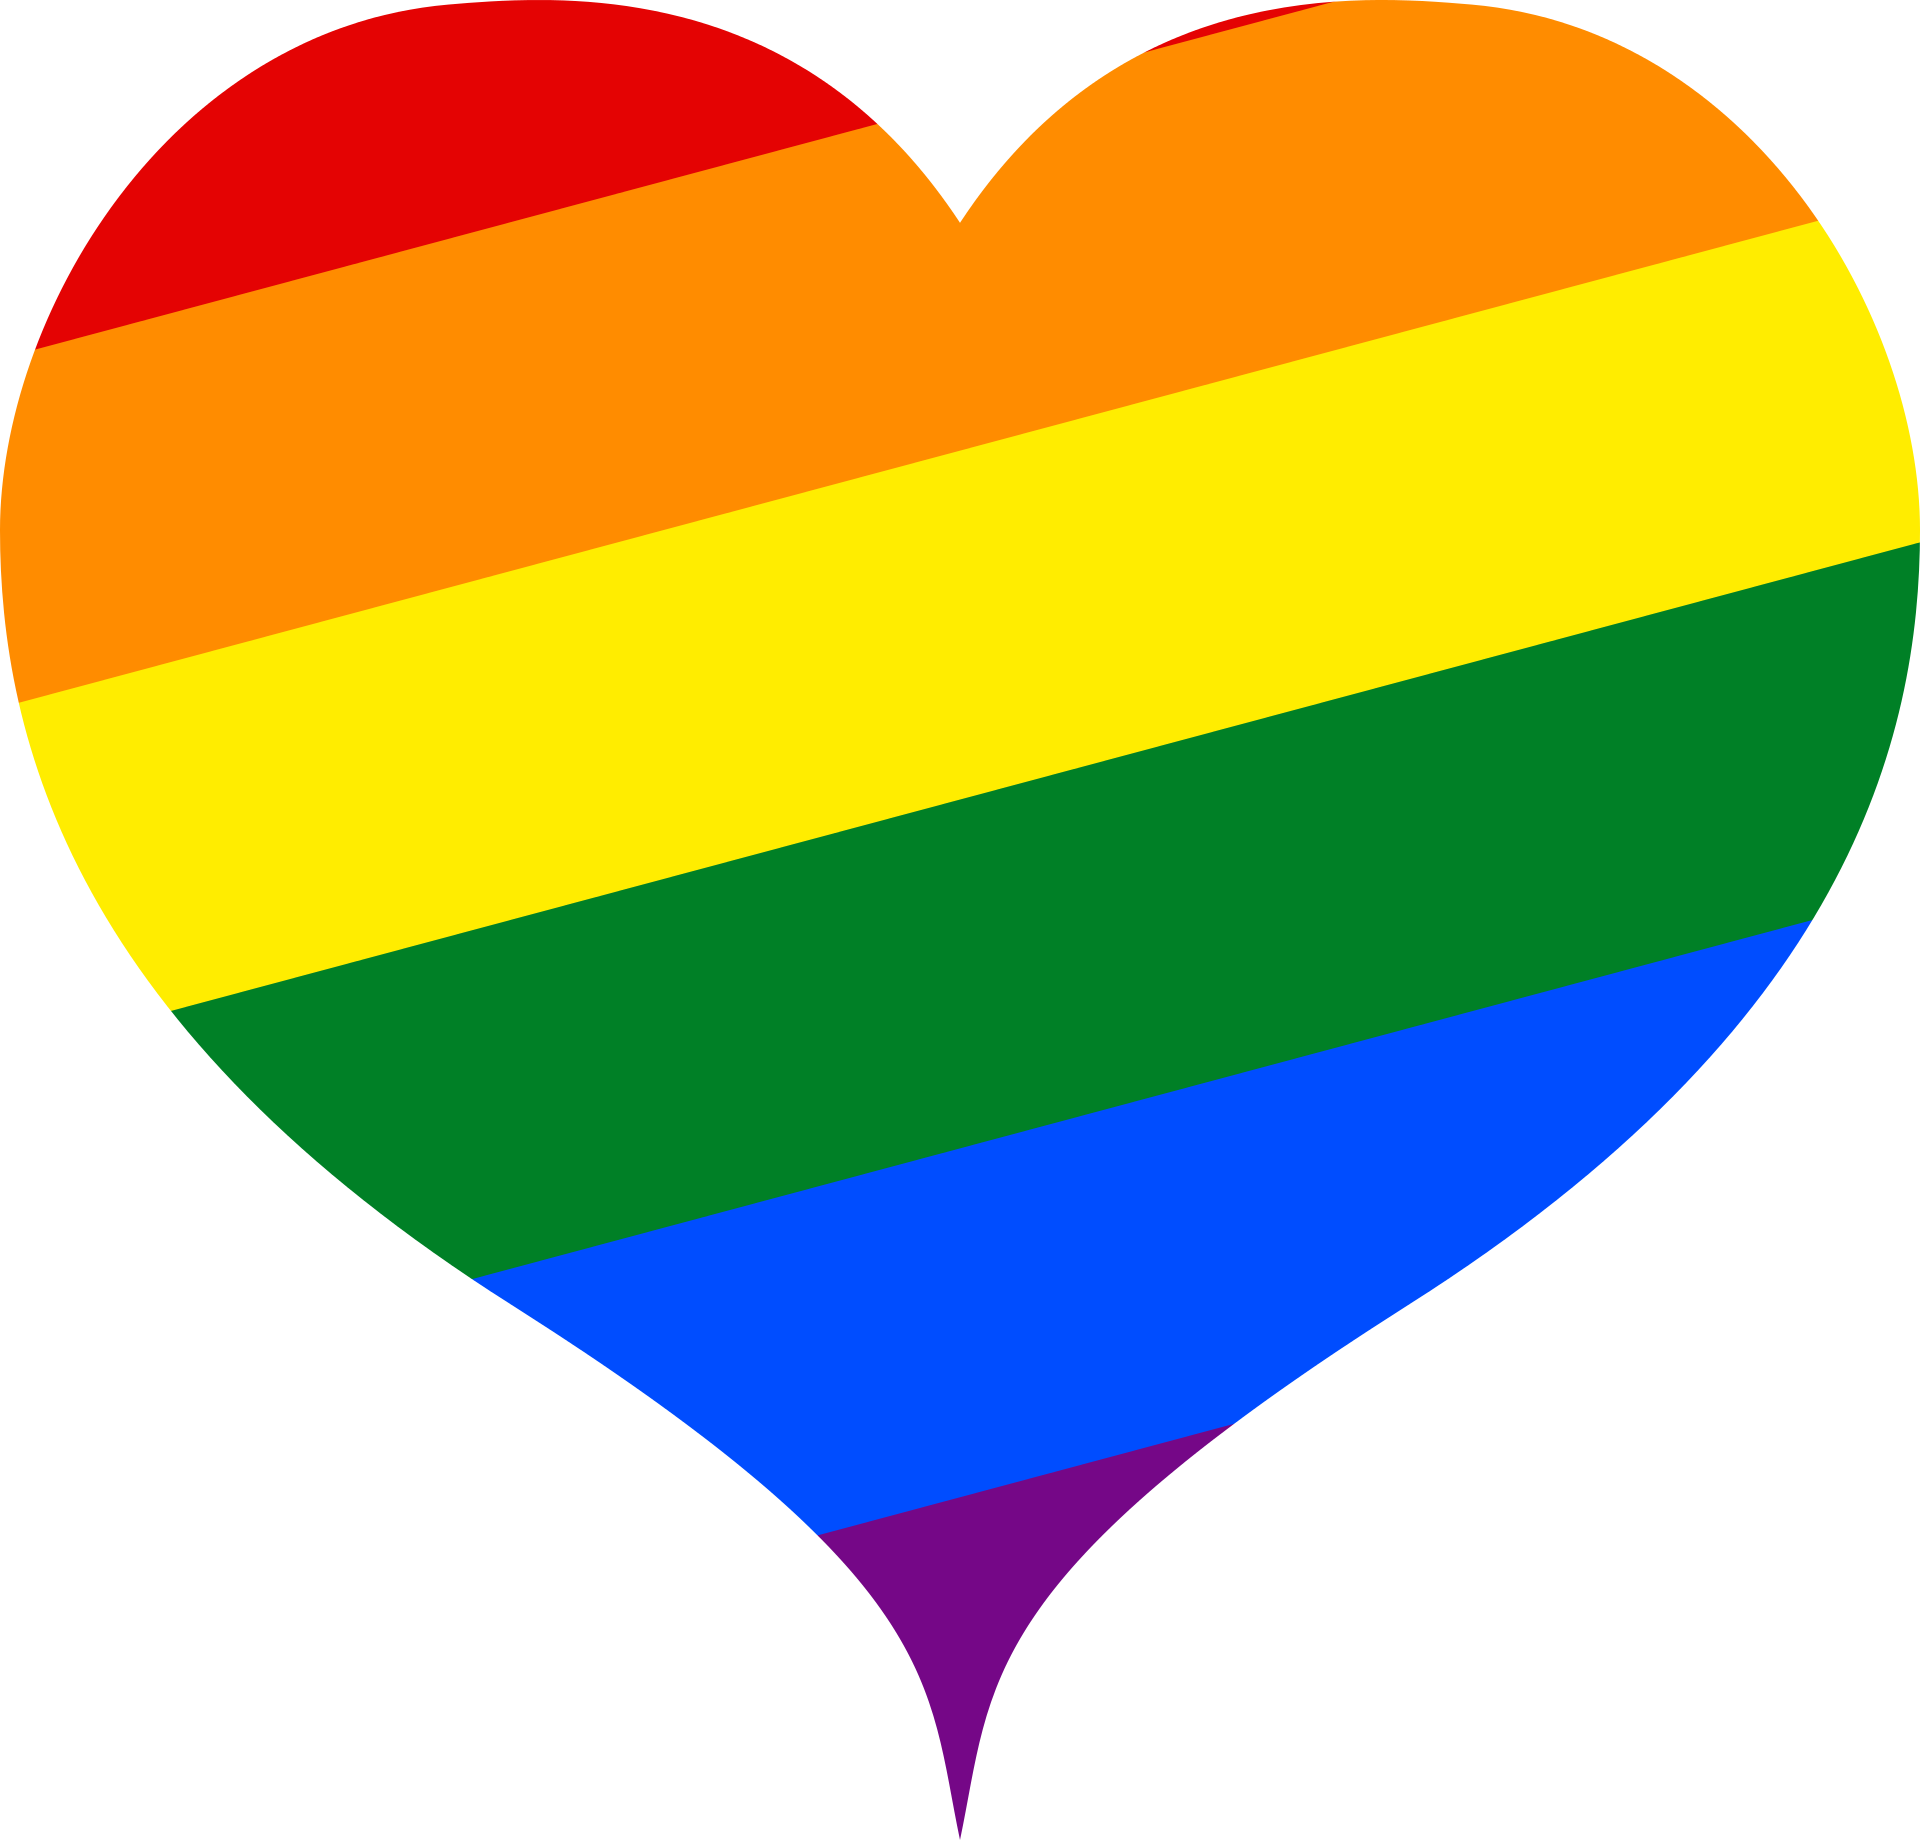 Pride heart graphic.